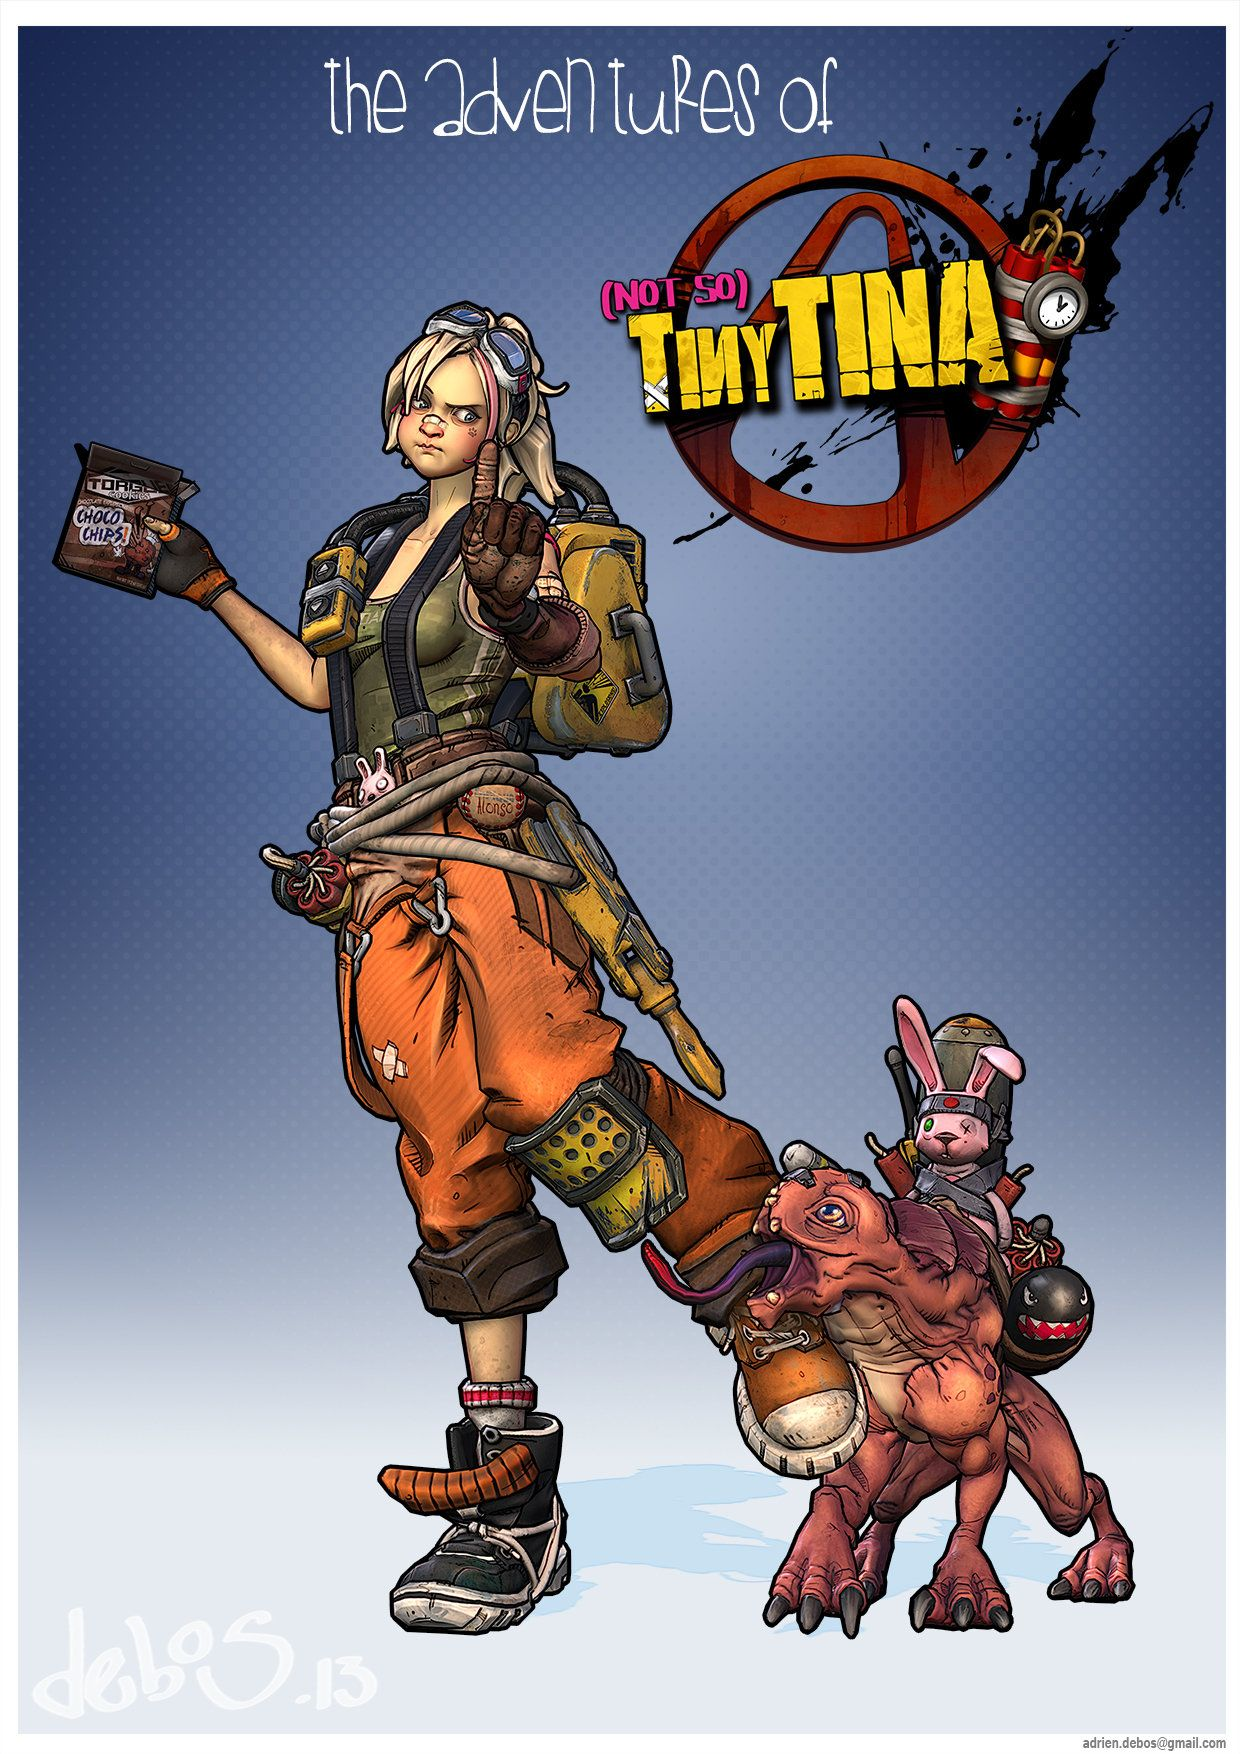 ArtStation - Not So Tiny Tina - Borderlands 2 Fan Art 2013